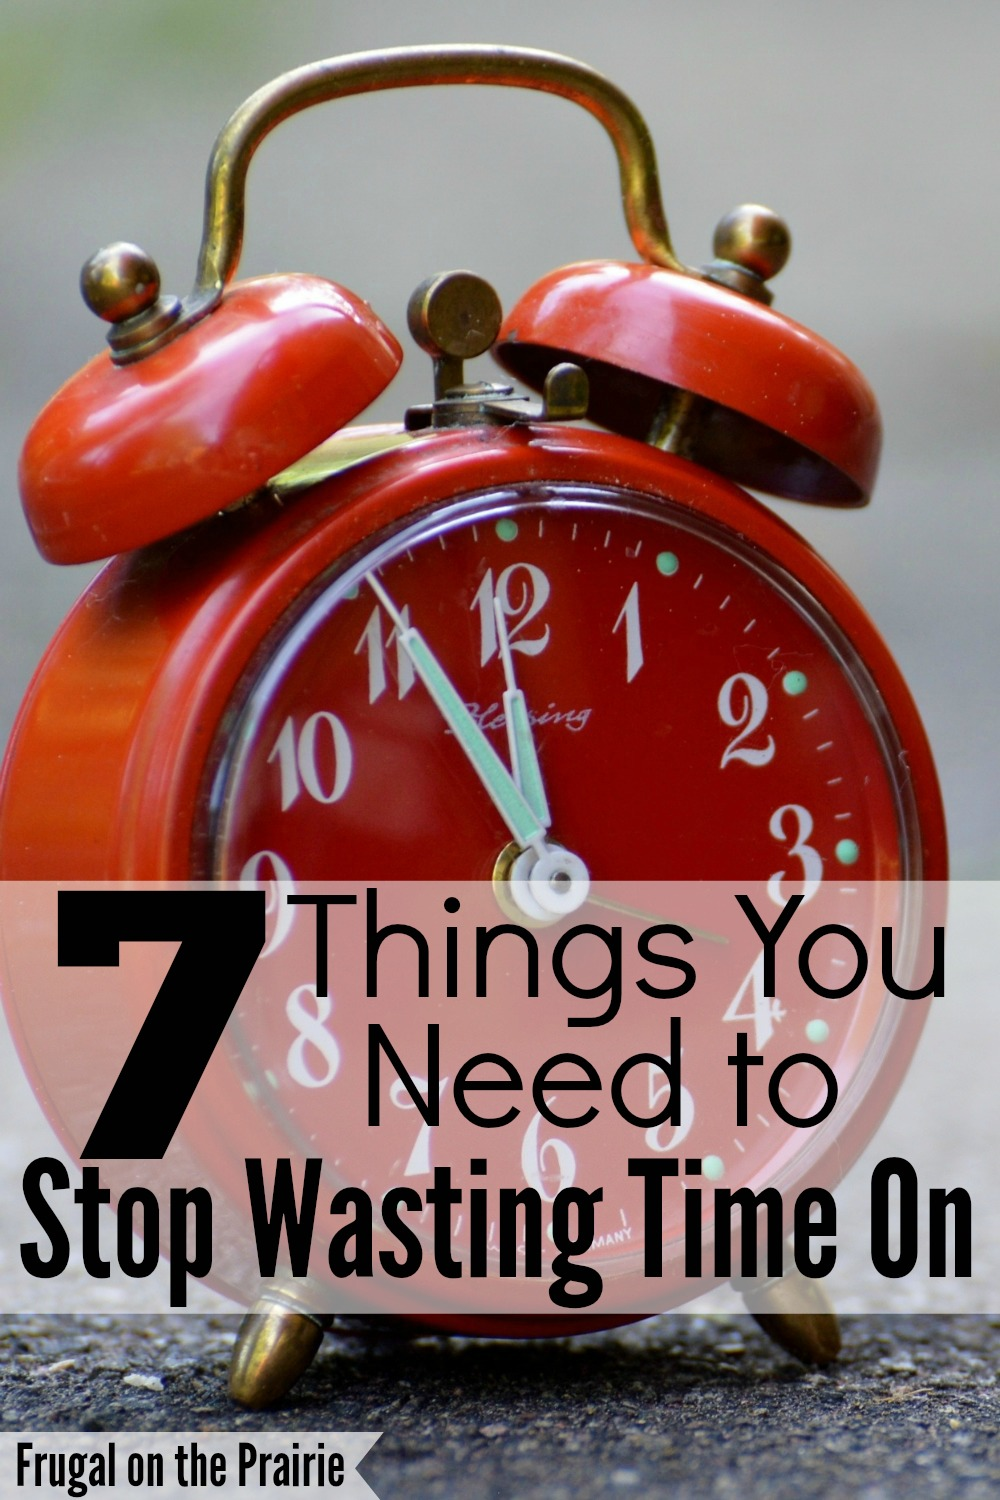 Do you frequently find yourself with a long to-do list that never gets done? Here are 7 routine activities that are wasting your time.